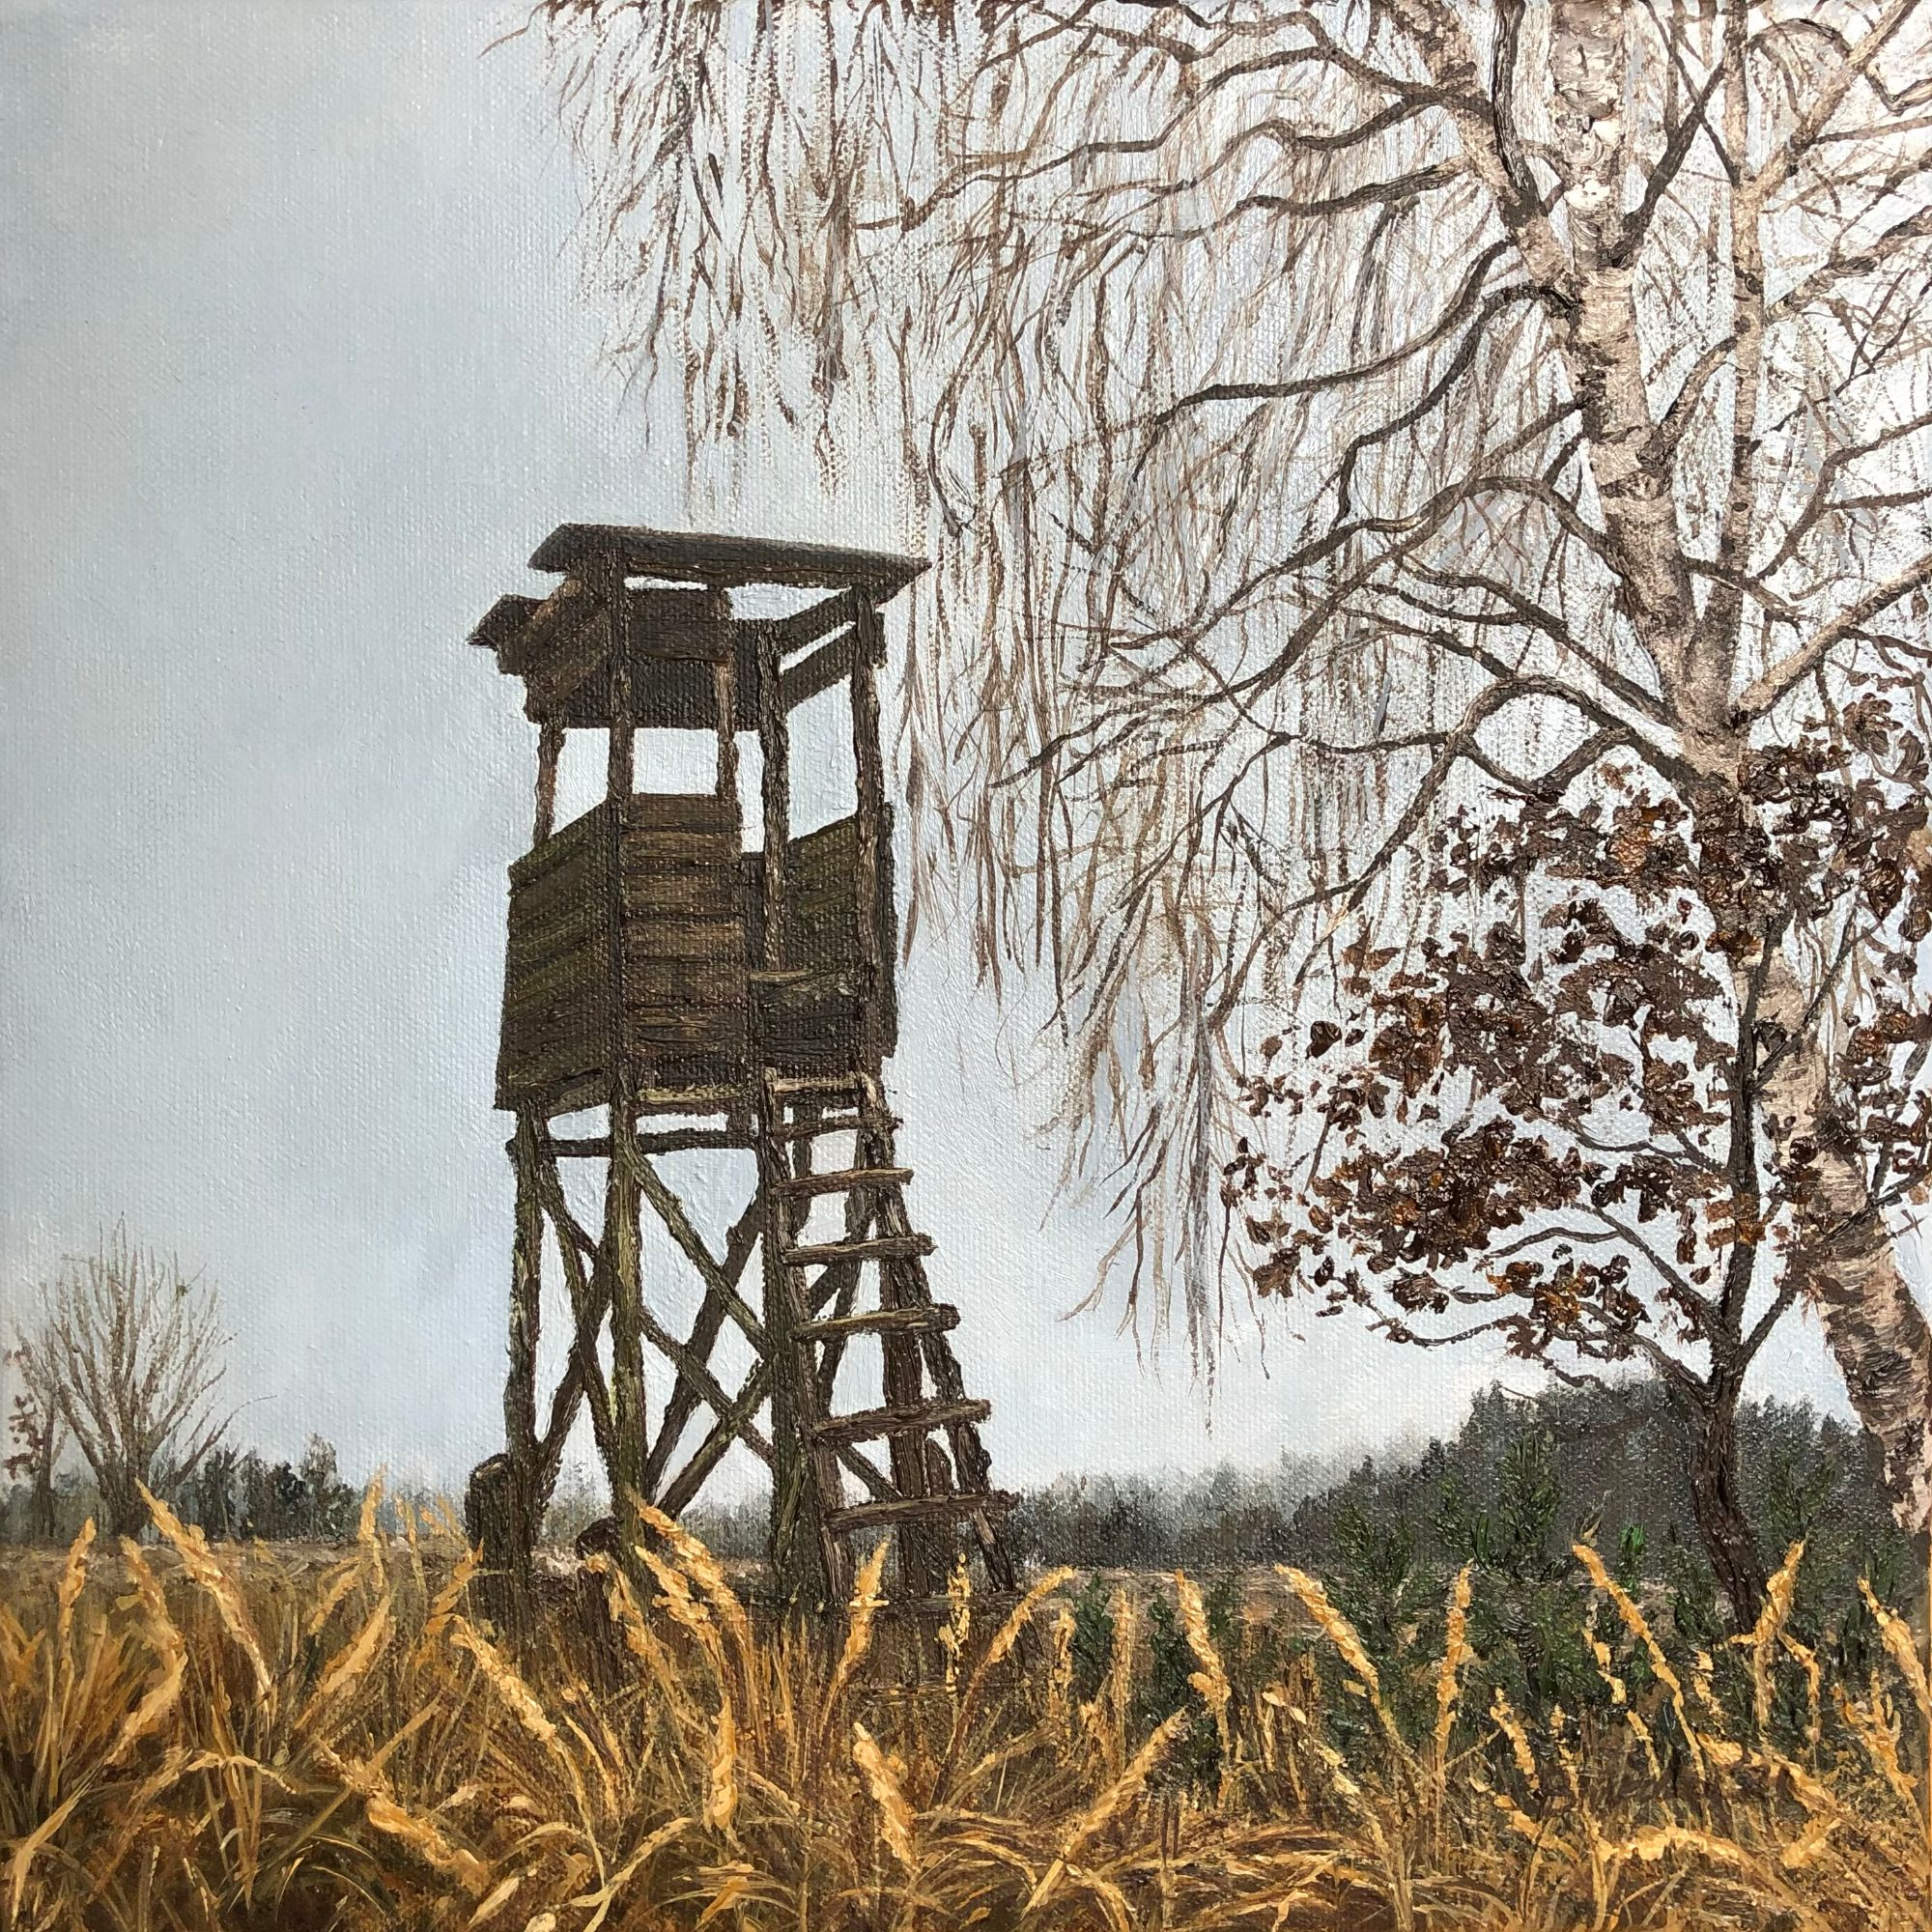 Hunting tower in January landscape with yellow grasses and a bare birch tree beside it.